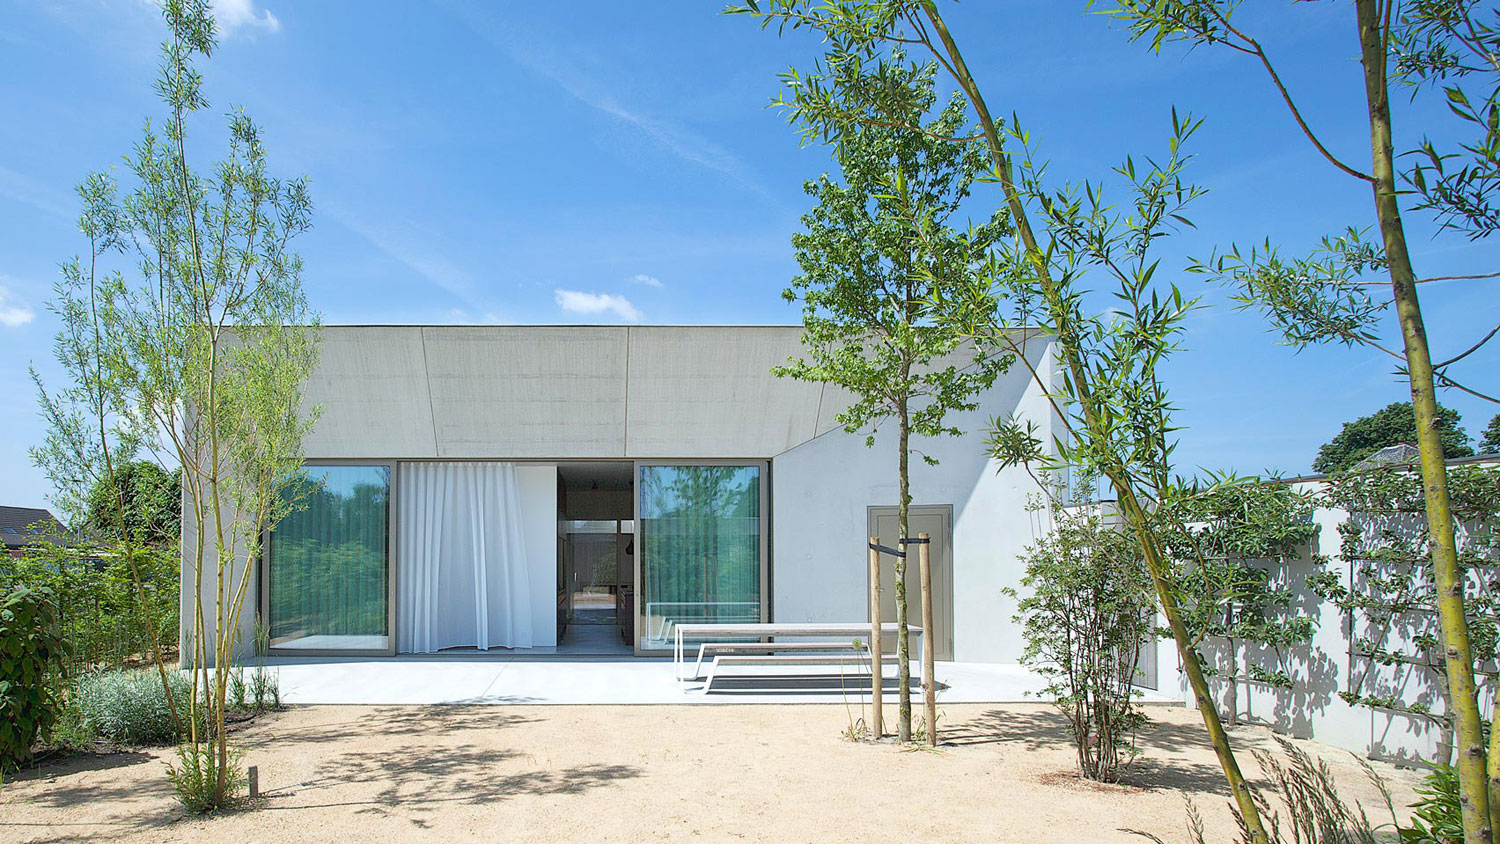 A Bright White Concrete Home Designed by Clauwers & Simon in Belgium